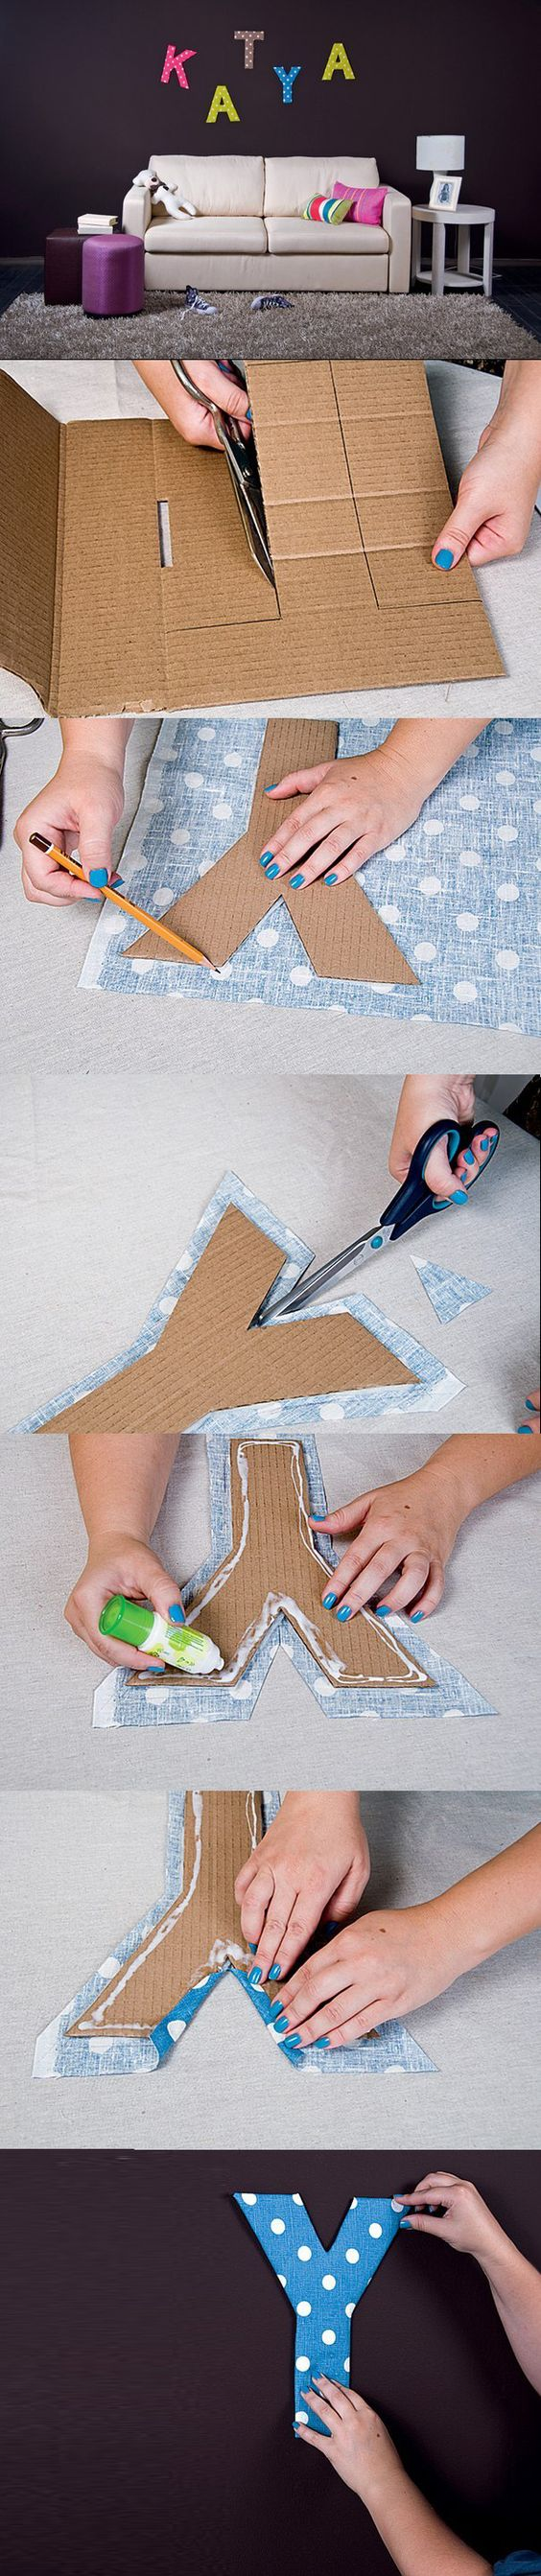 Diy fabric covered letters pyssel pinterest tejido for Fabric covered letters